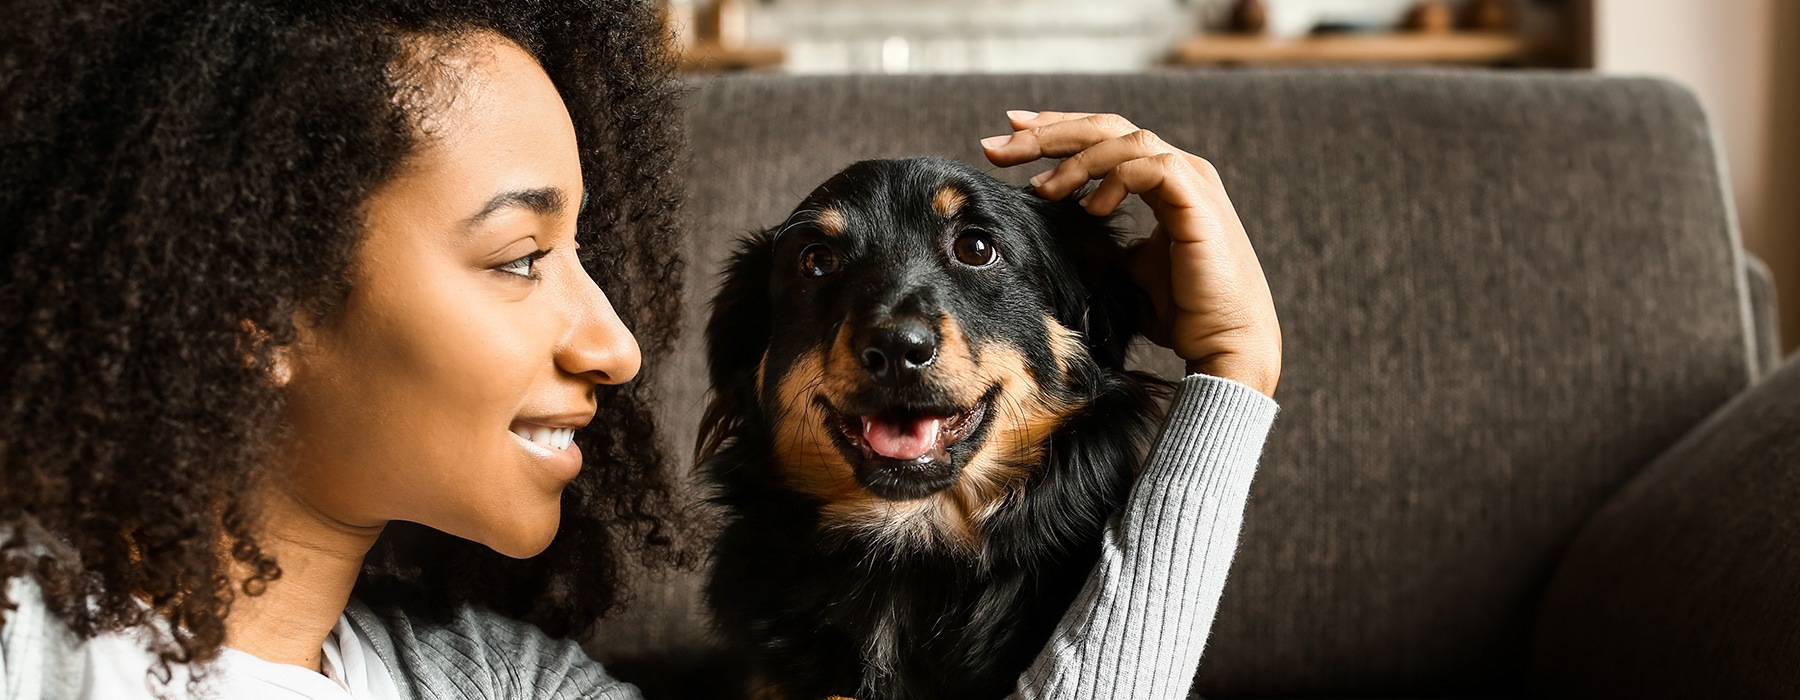 lifestyle image of a woman petting a dog indoors